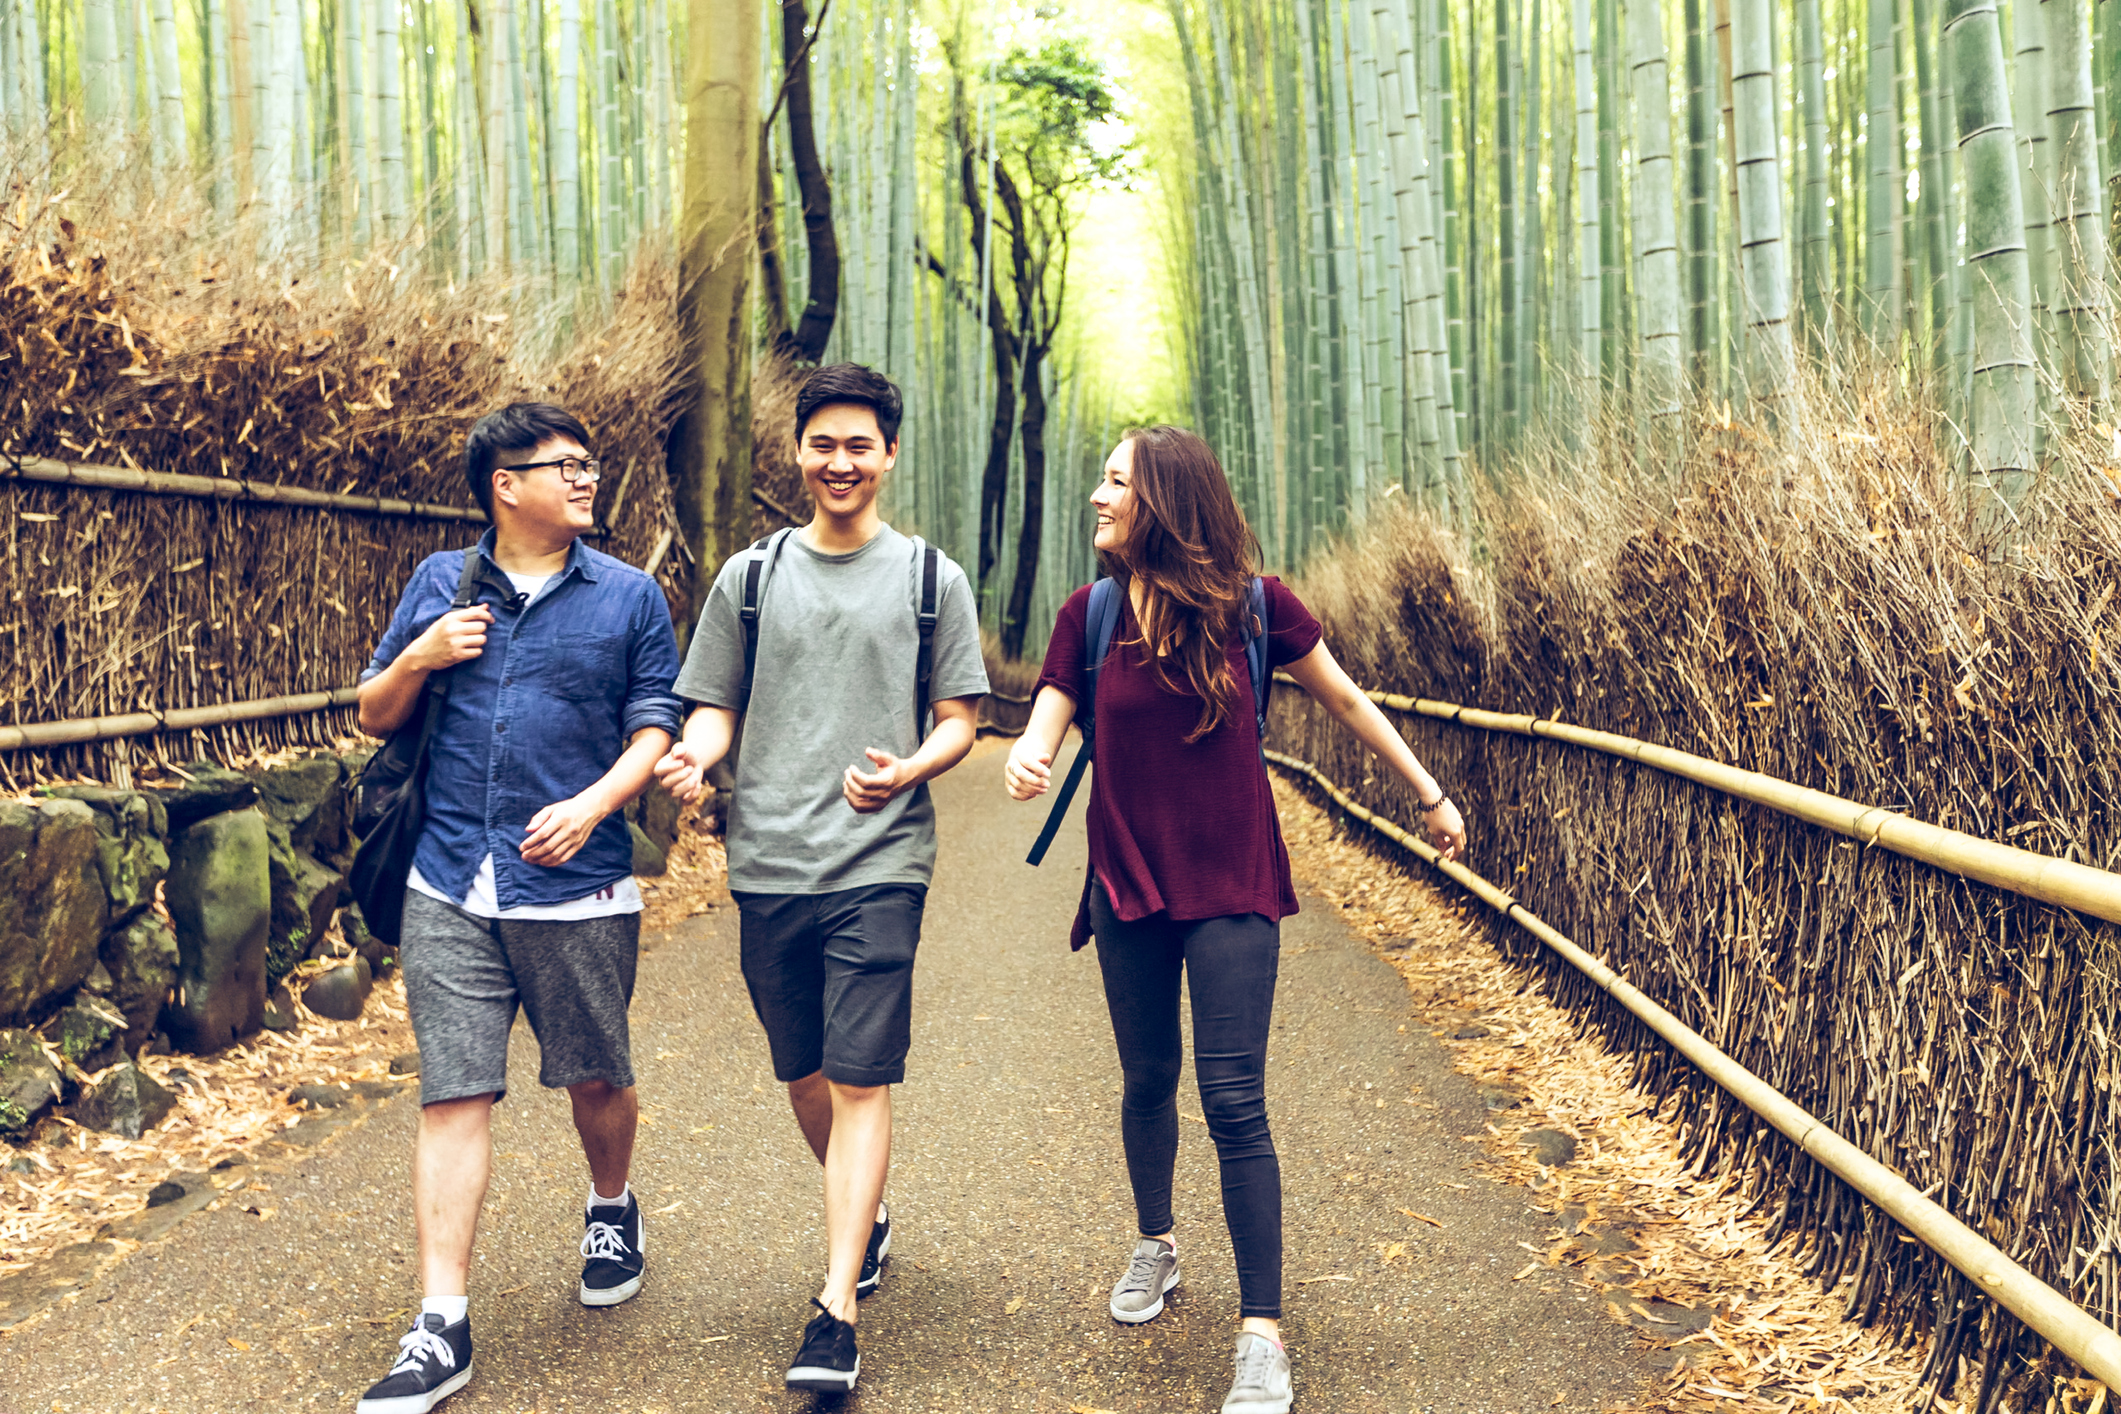 College Students taking a hiking trip to Bamboo Forest in Arashiyama, Kyoto, Japan